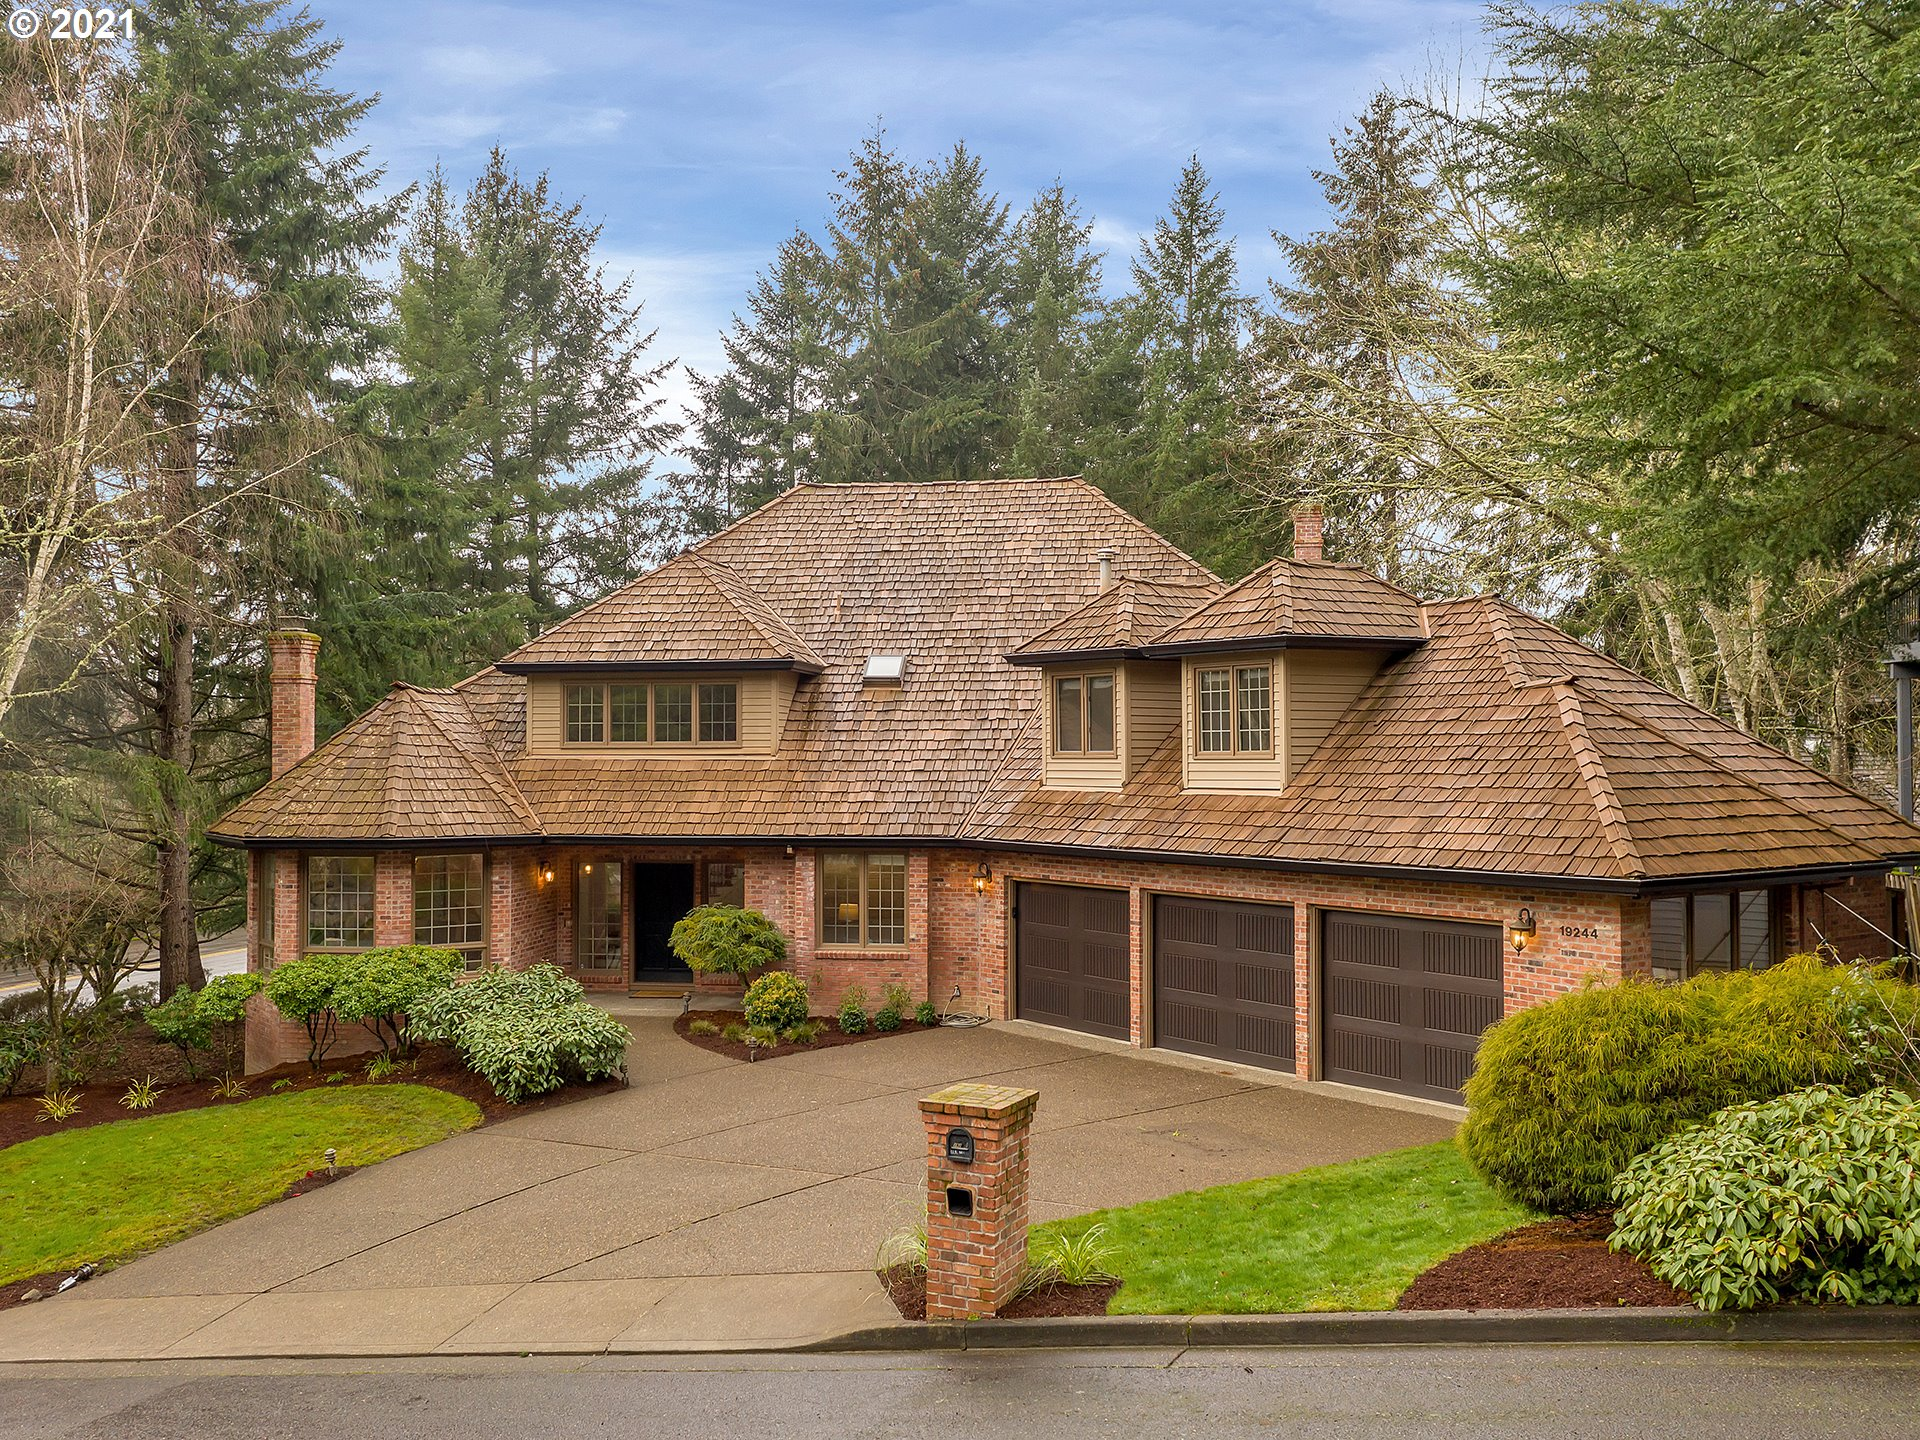 Elegance, quality & delicious privacy in desirable Lake O neighborhood. Surrounded by parks and green space, there is so much to love in this renovated grand floor-plan: artisan finishes, dreamy master suite, formal living & dining. Find tranquility in a private backyard or entertain in an outstanding chef's kitchen w/ top-end SS appliances. Roomy, flexible spaces in Oregon's #1 school district with easy access to recreation, shopping, dining & airport. Lucky you: back on market due to job loss.